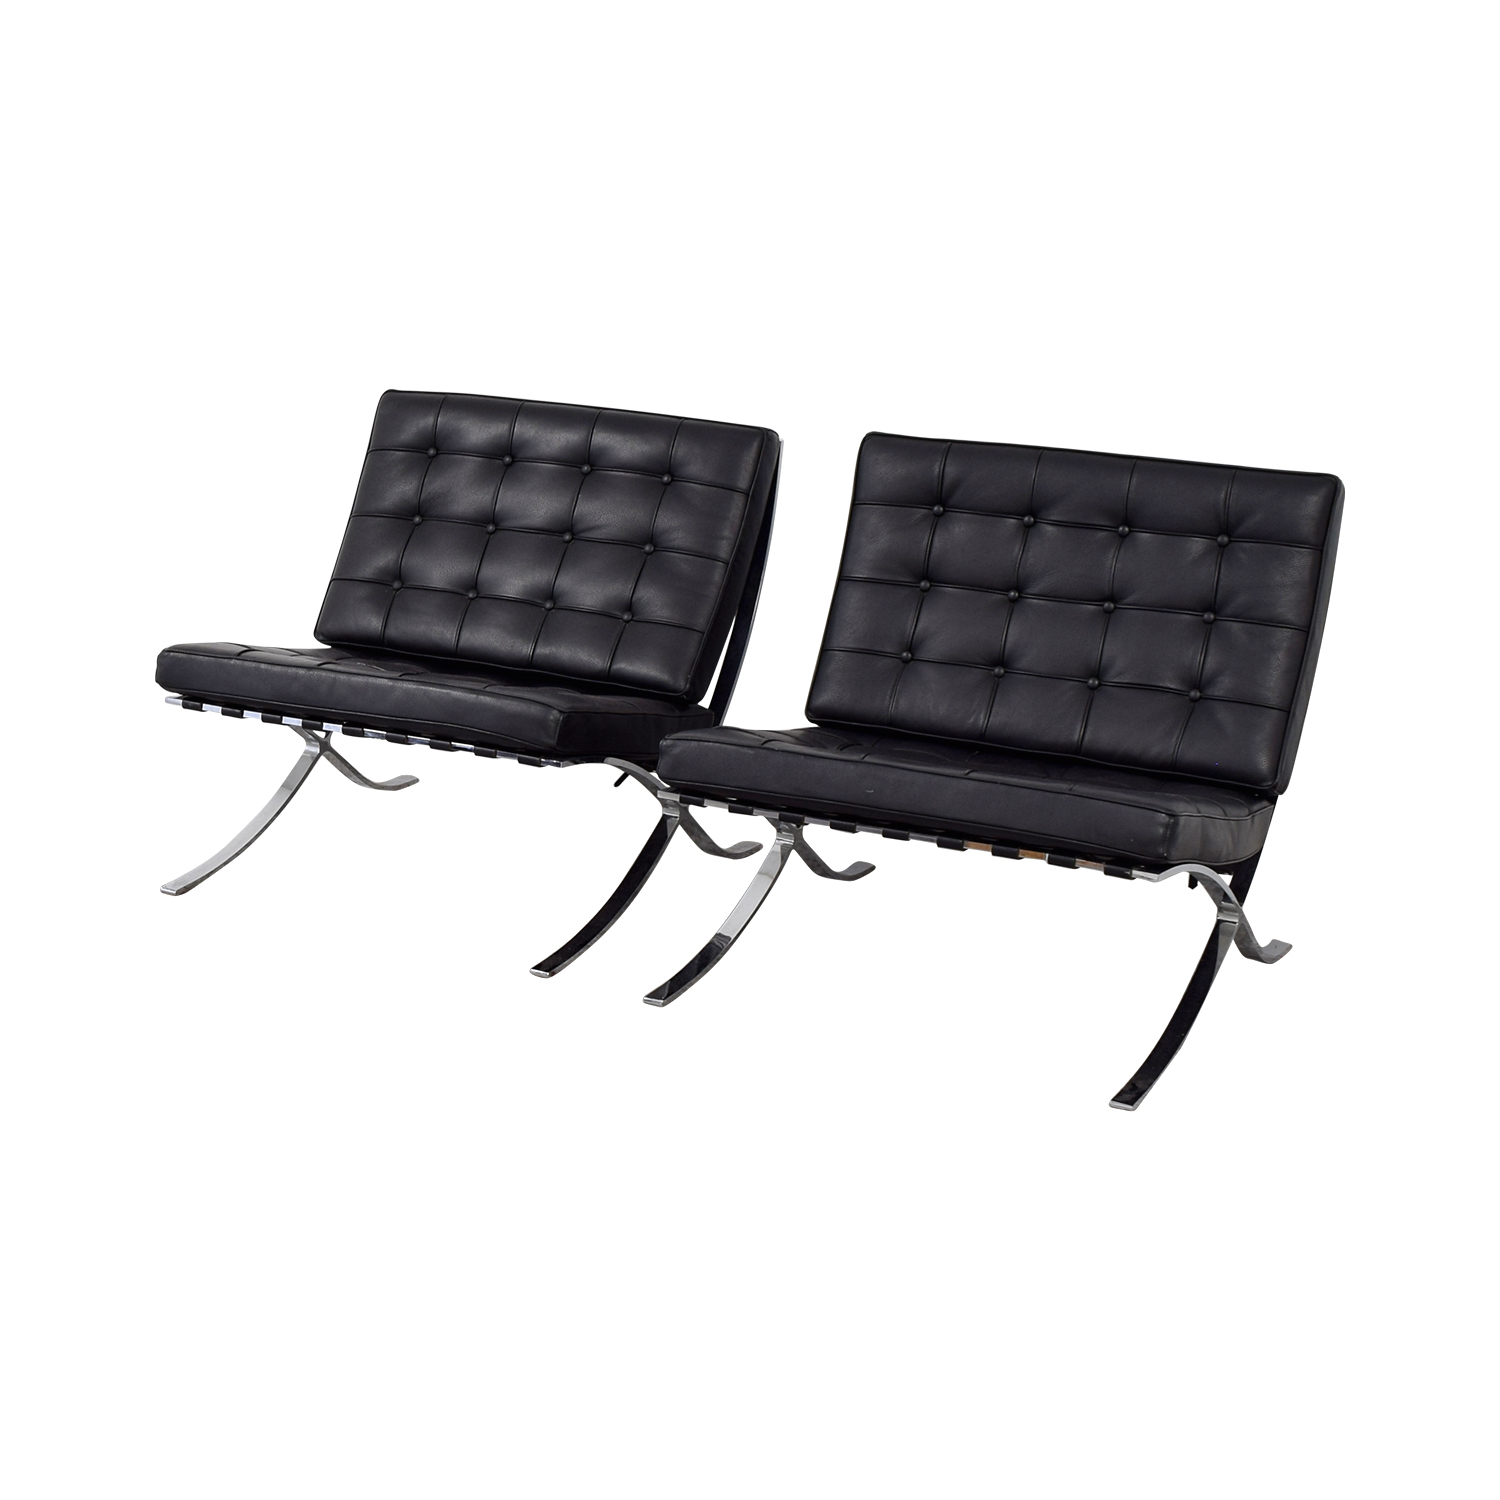 shop Black and Chrome Tufted Barcelona Style Accent Chairs